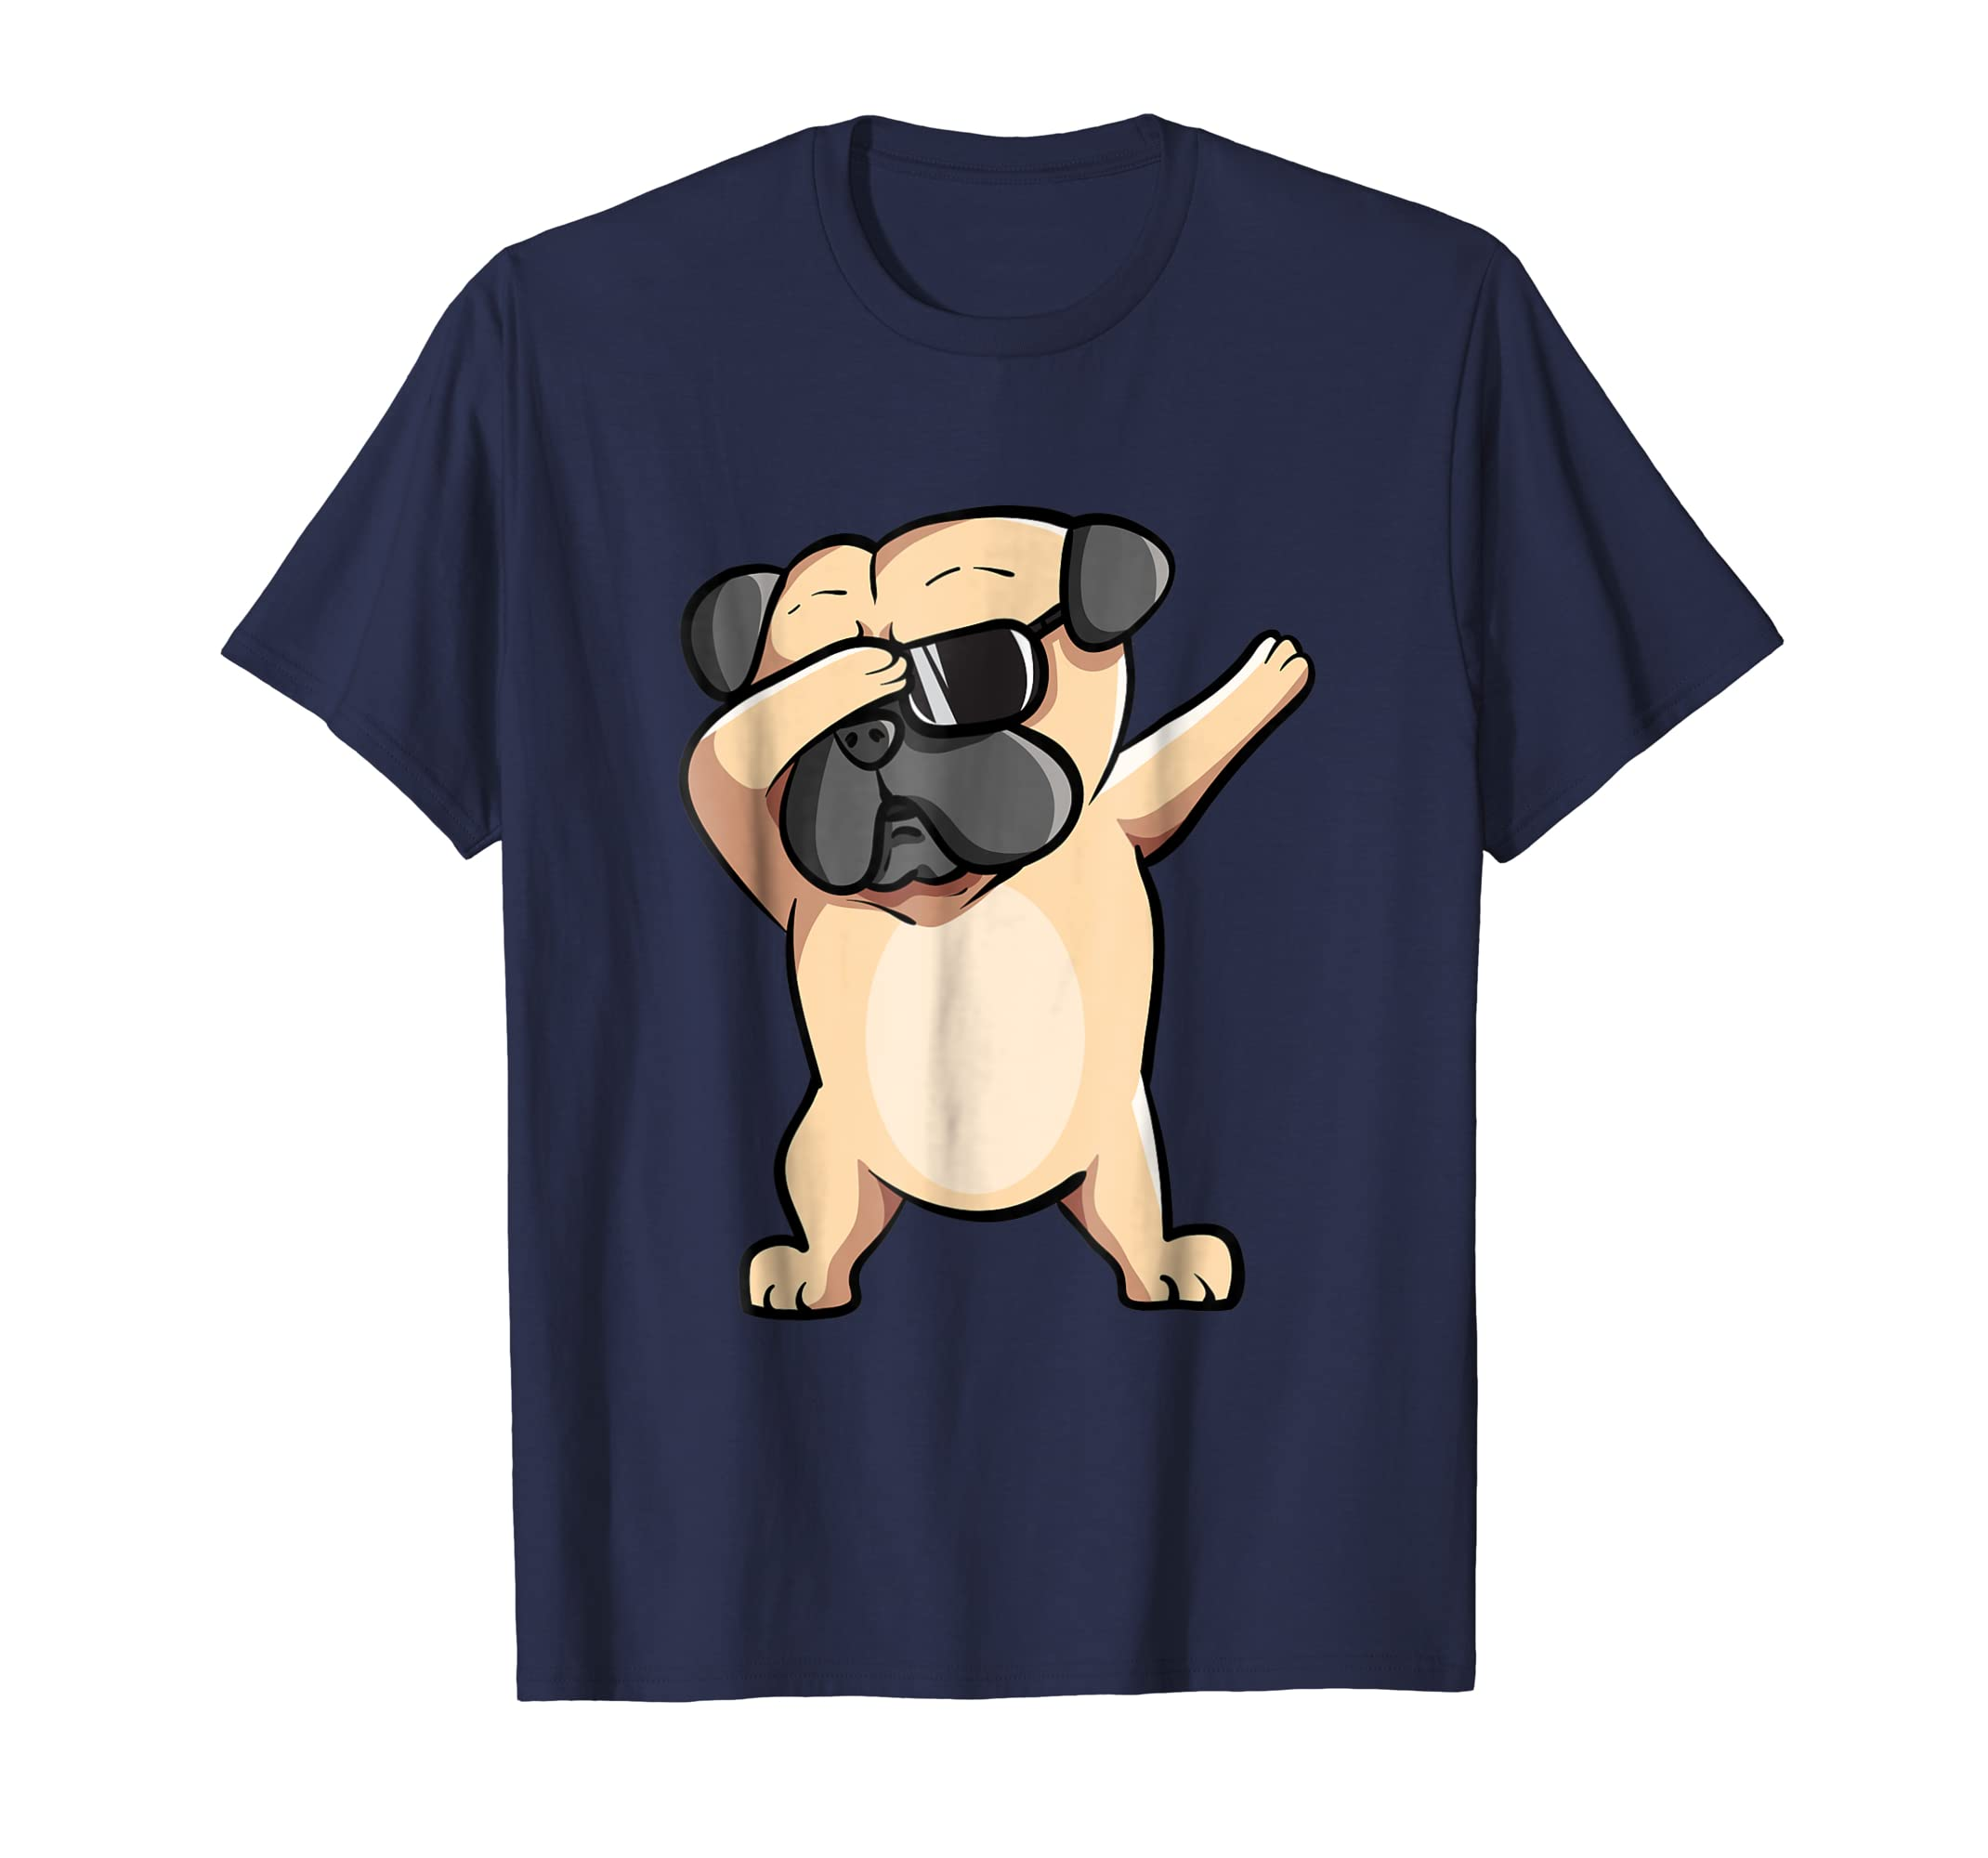 Cool Dabbing Pug Tee Shirt - Cute Funny Dog Dab T-Shirt-AZP